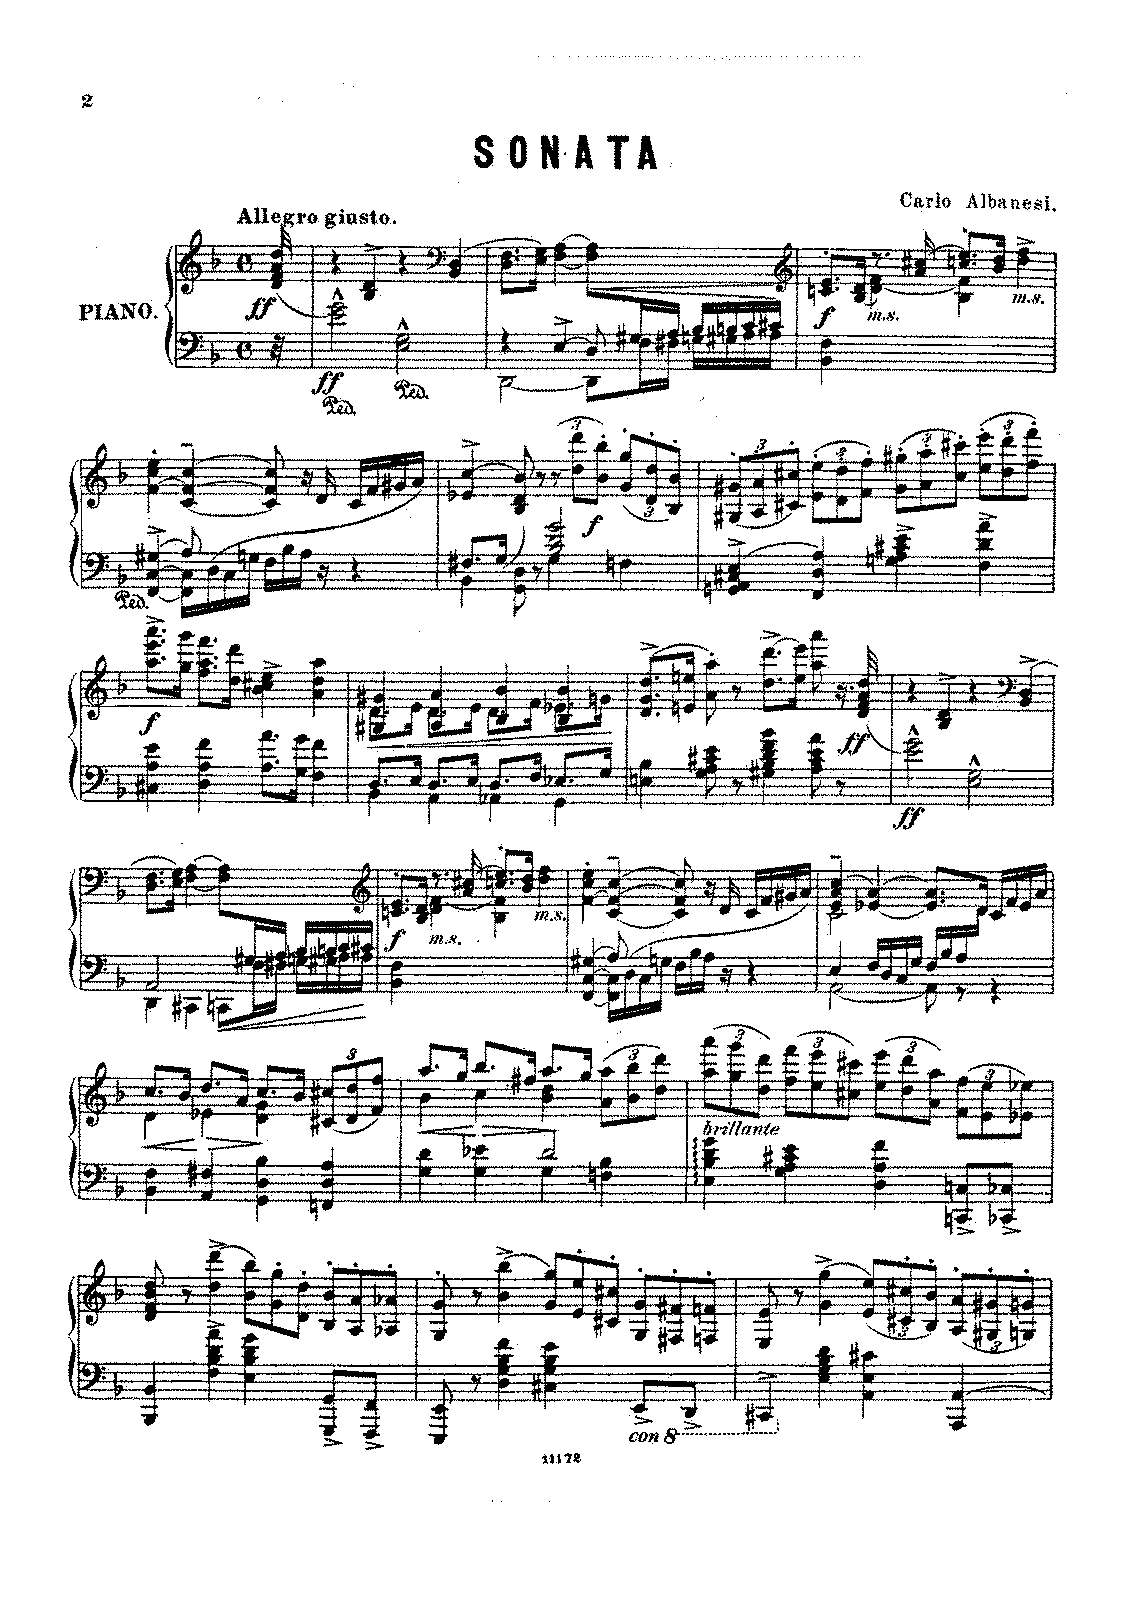 PMLP354695-Albanesi, Carlo - 1856-1930 - Sonata in D minor.pdf